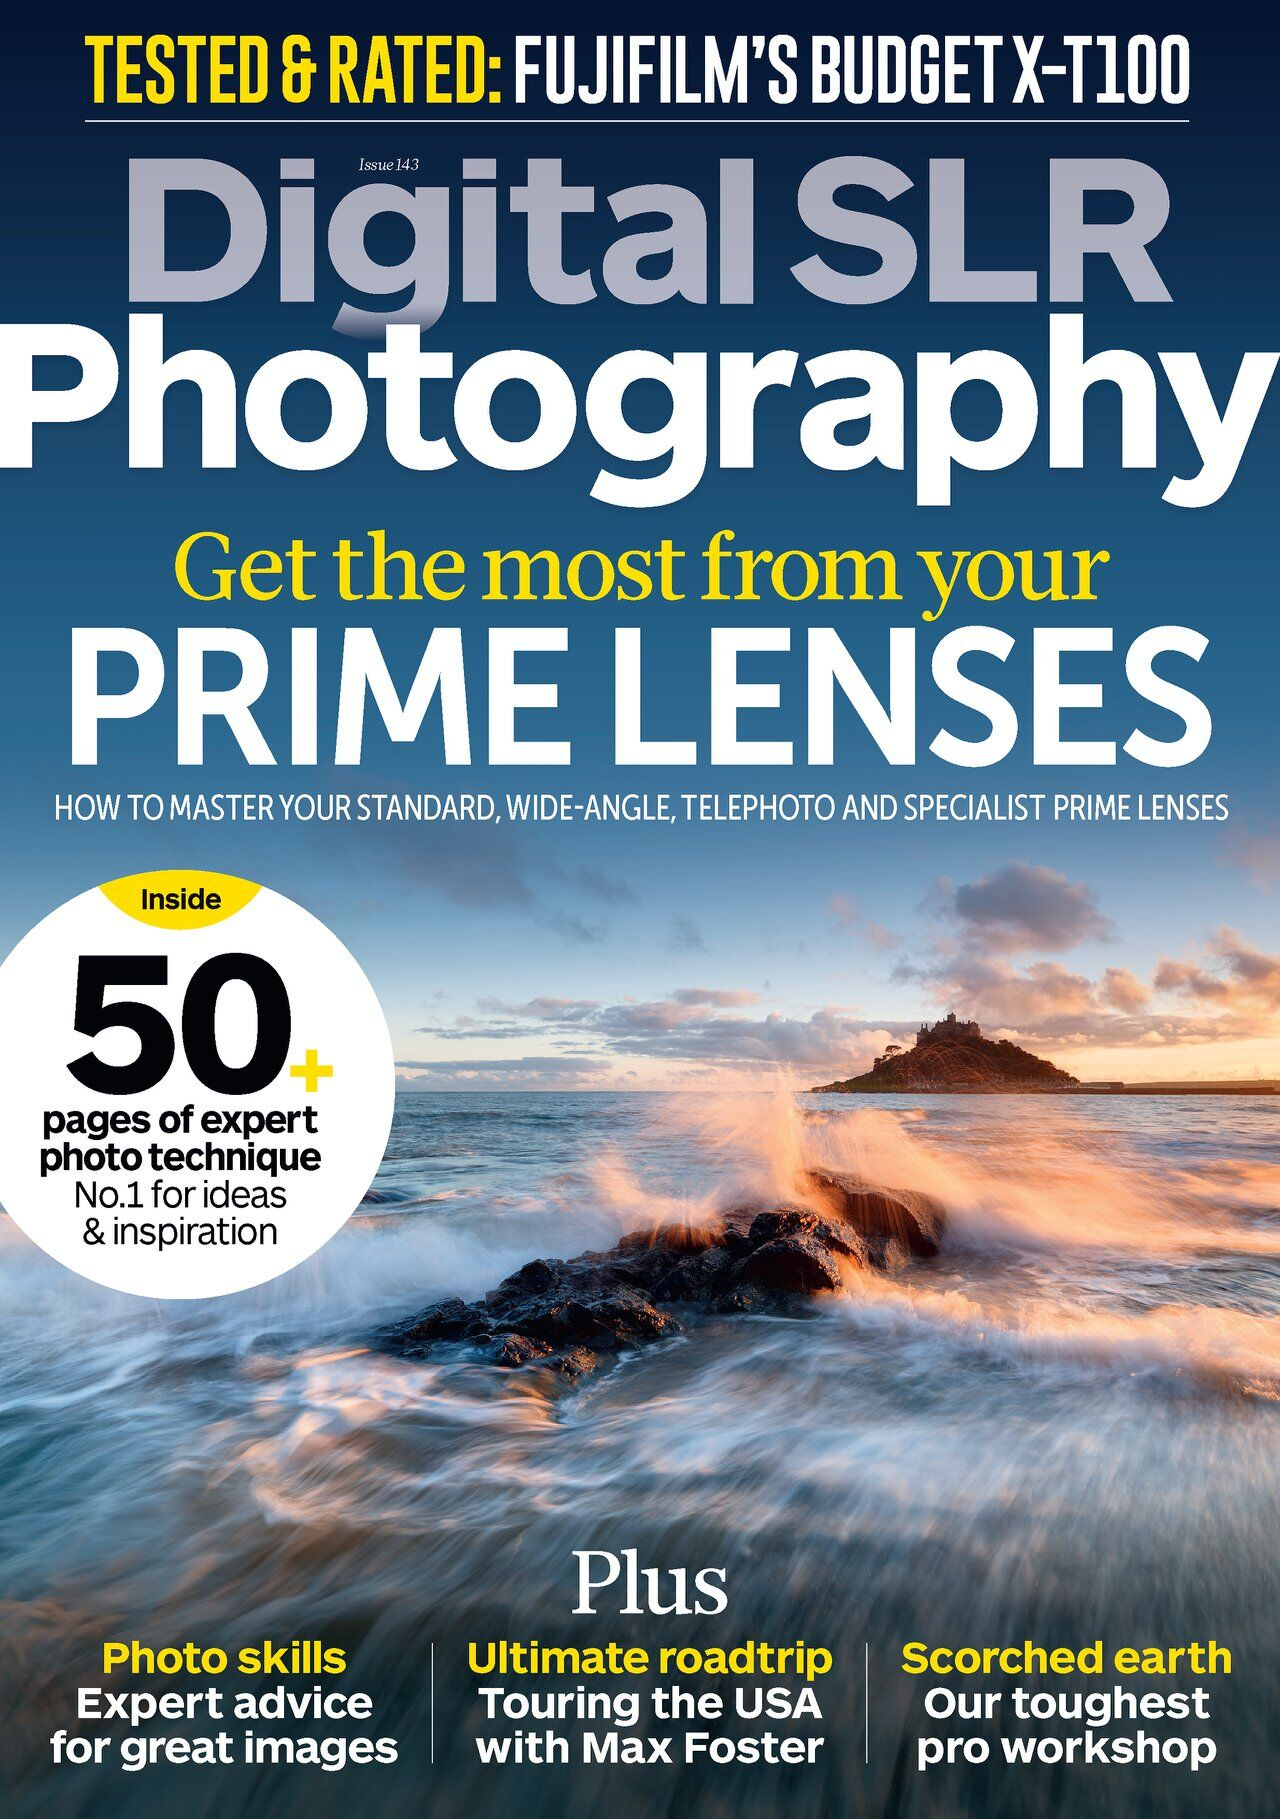 Digital SLR Photography, October 2018, Issue 143, Ultimate Roadtrip, Touring the USA with Max Foster, photo